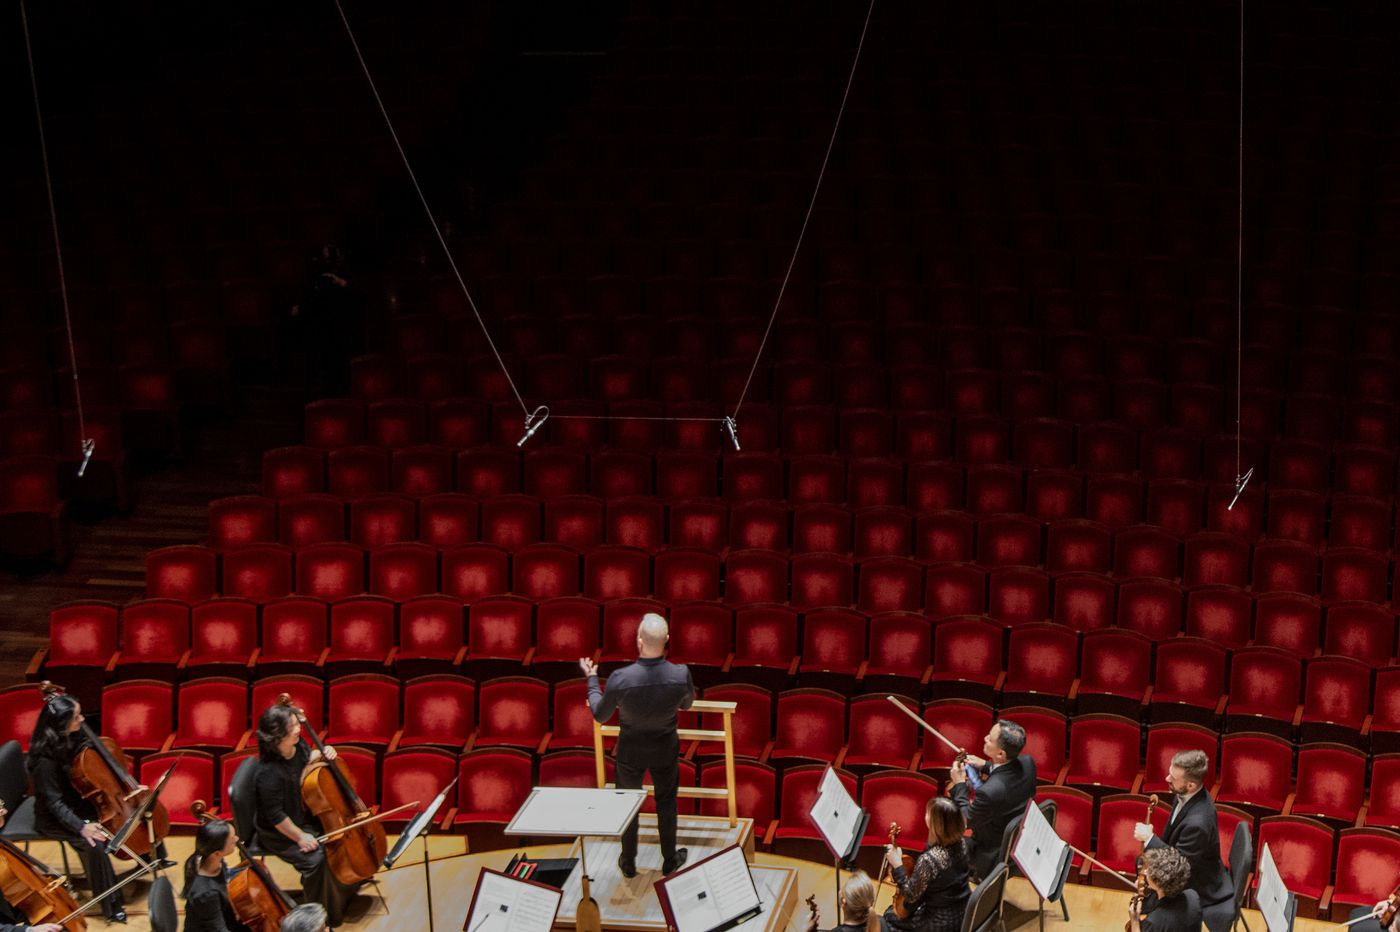 Coronavirus forced the Philadelphia Orchestra to play to an empty house. And I was there to witness it